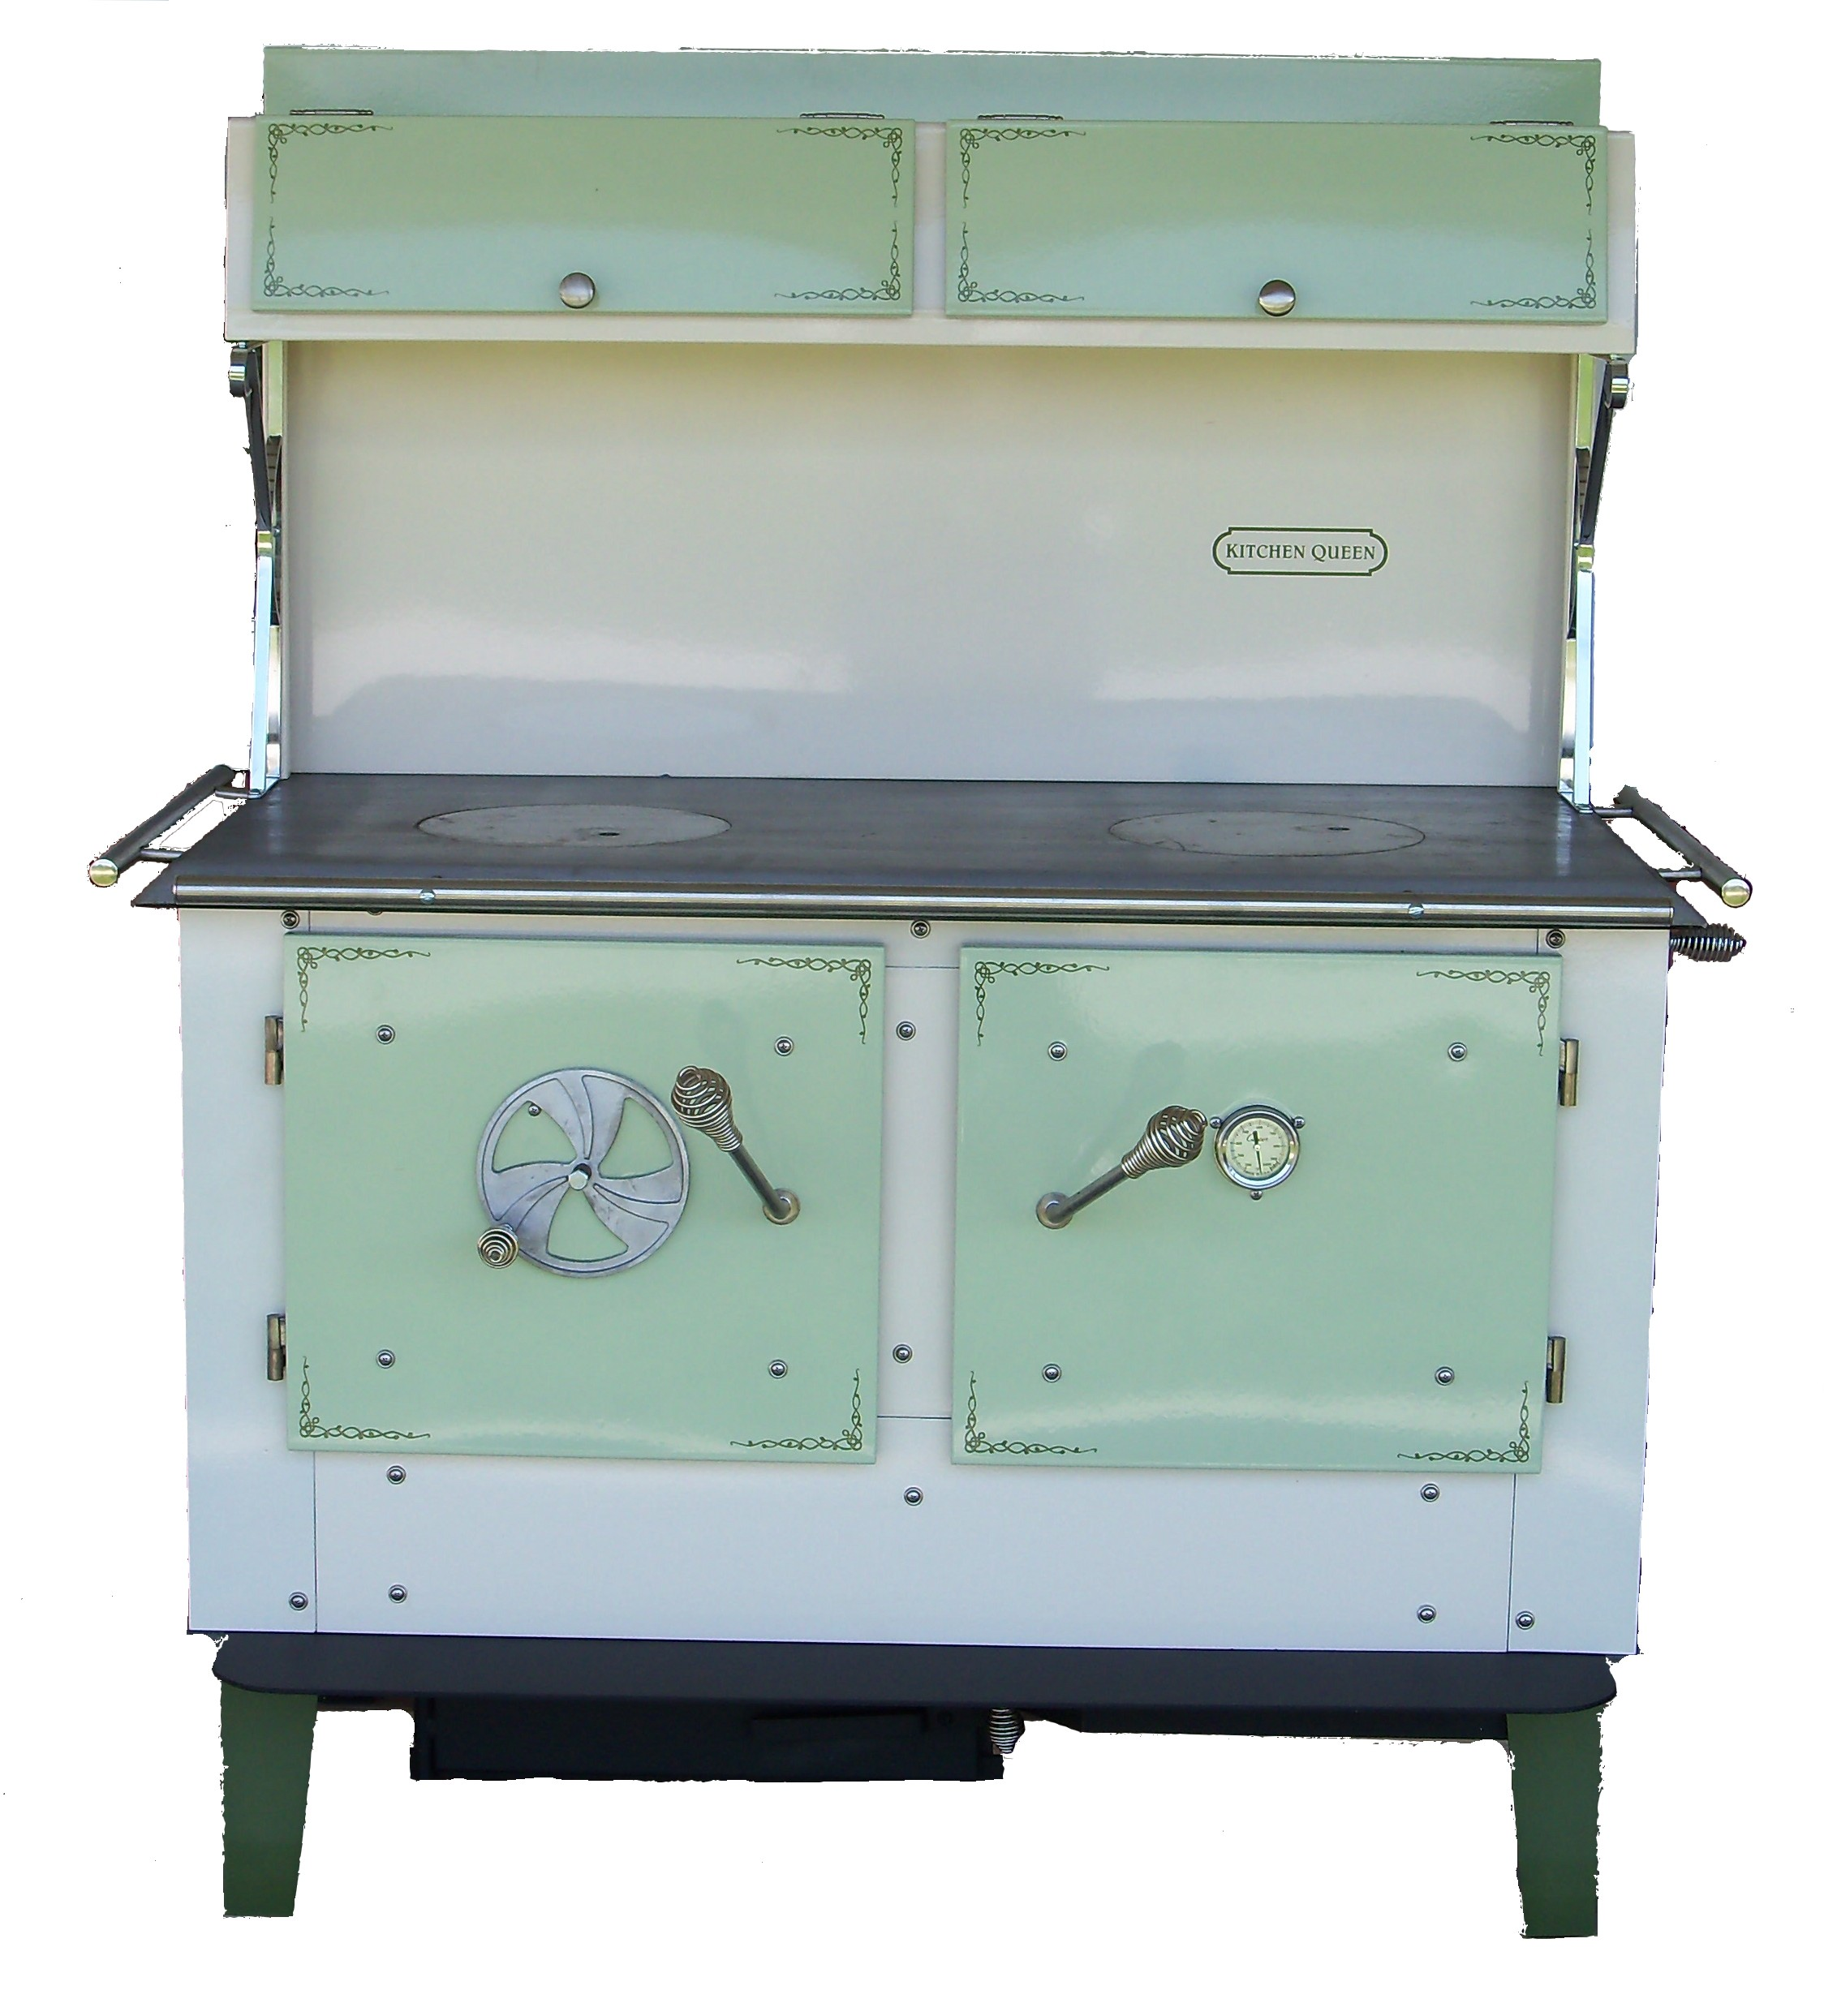 kitchen queen wood cook stoves kitchen queen stoves